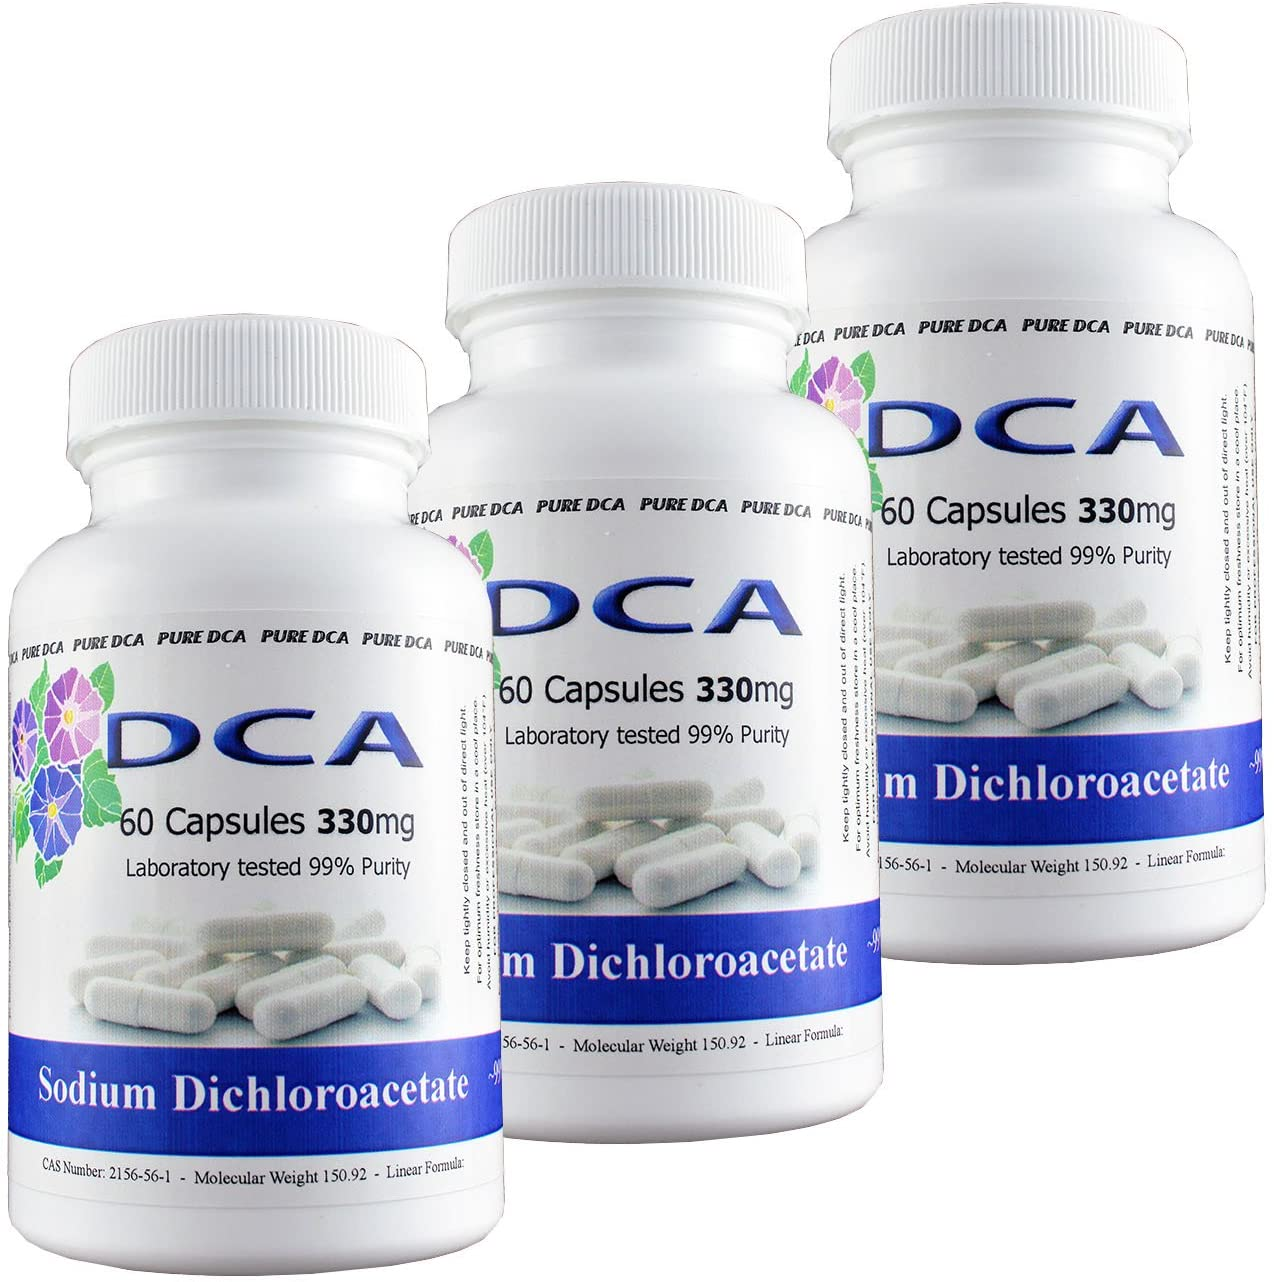 Pure DCA - Sodium Dichloroacetate (180 Capsules) 330mg Vegetarian/Vegan Capsules Complete with Analytical Certificate of Purity - Buy with Confidence 10 Years Worlds Largest Supplier